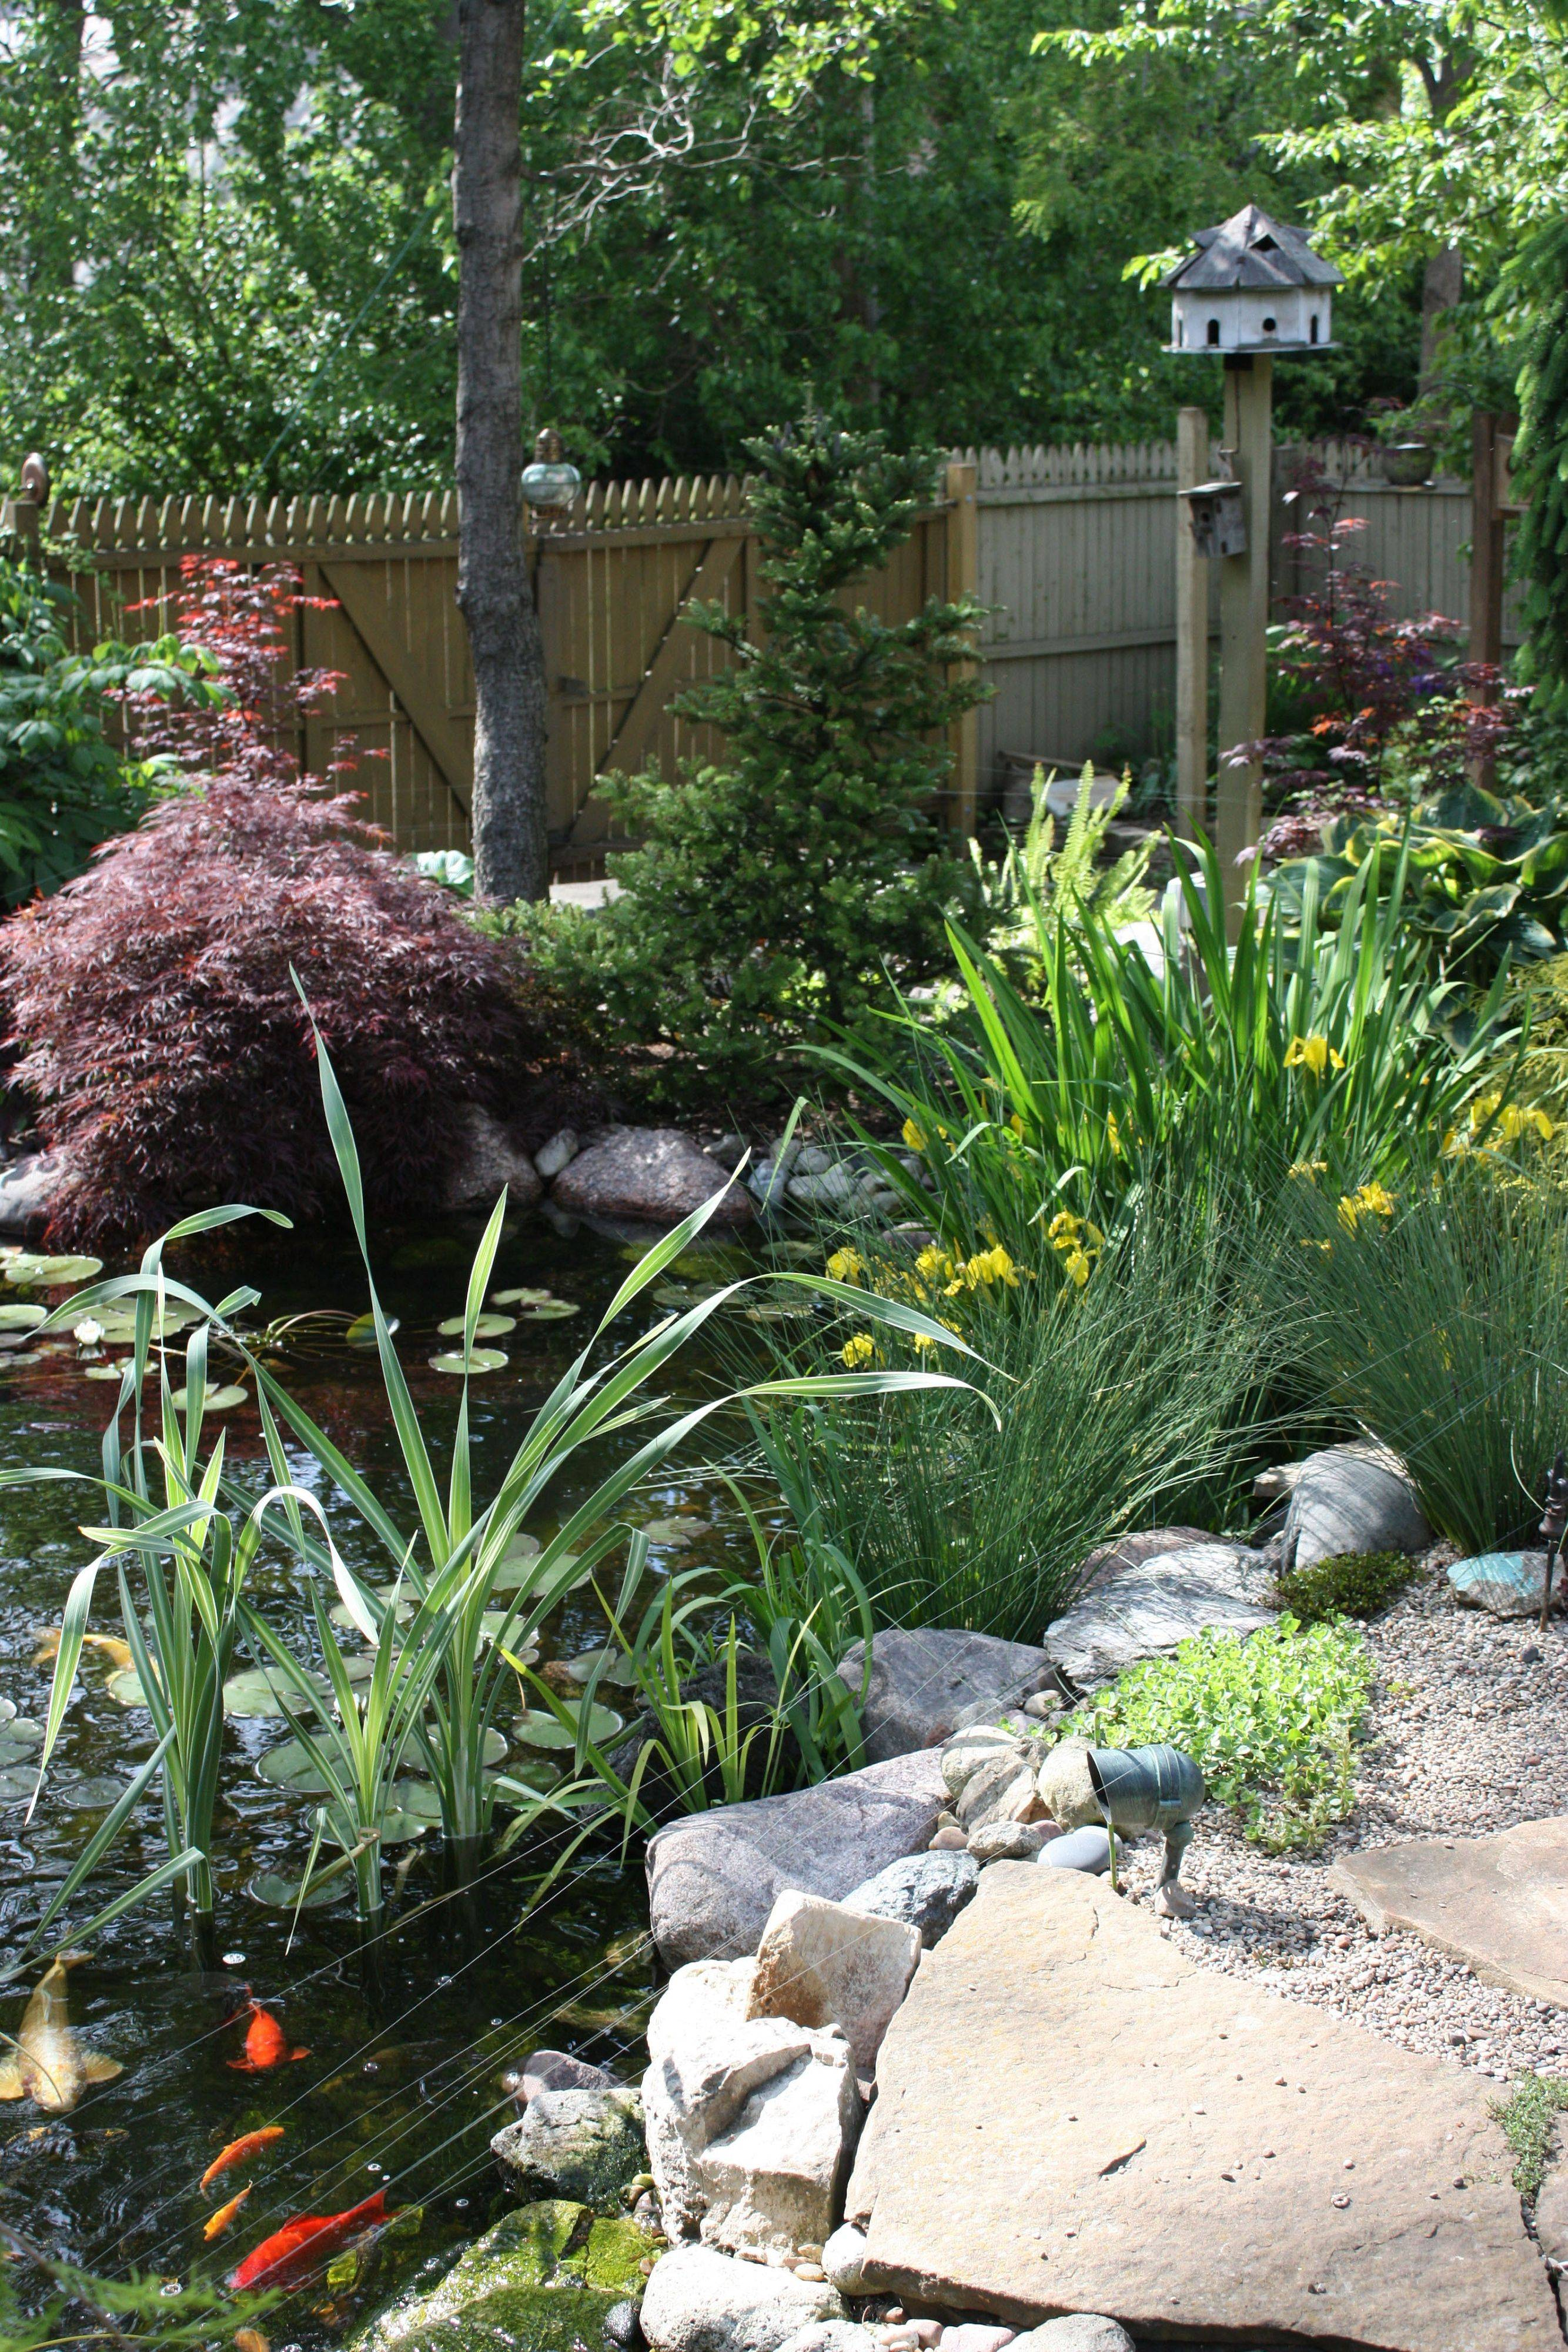 Ellen Berry designed her garden -- featured on the Lisle Garden Gait -- to include a cascading brook and 15-foot pond where water lilies and chow koi bring color. Her landscaping focuses on foliage and texture rather than blooms and blossoms.